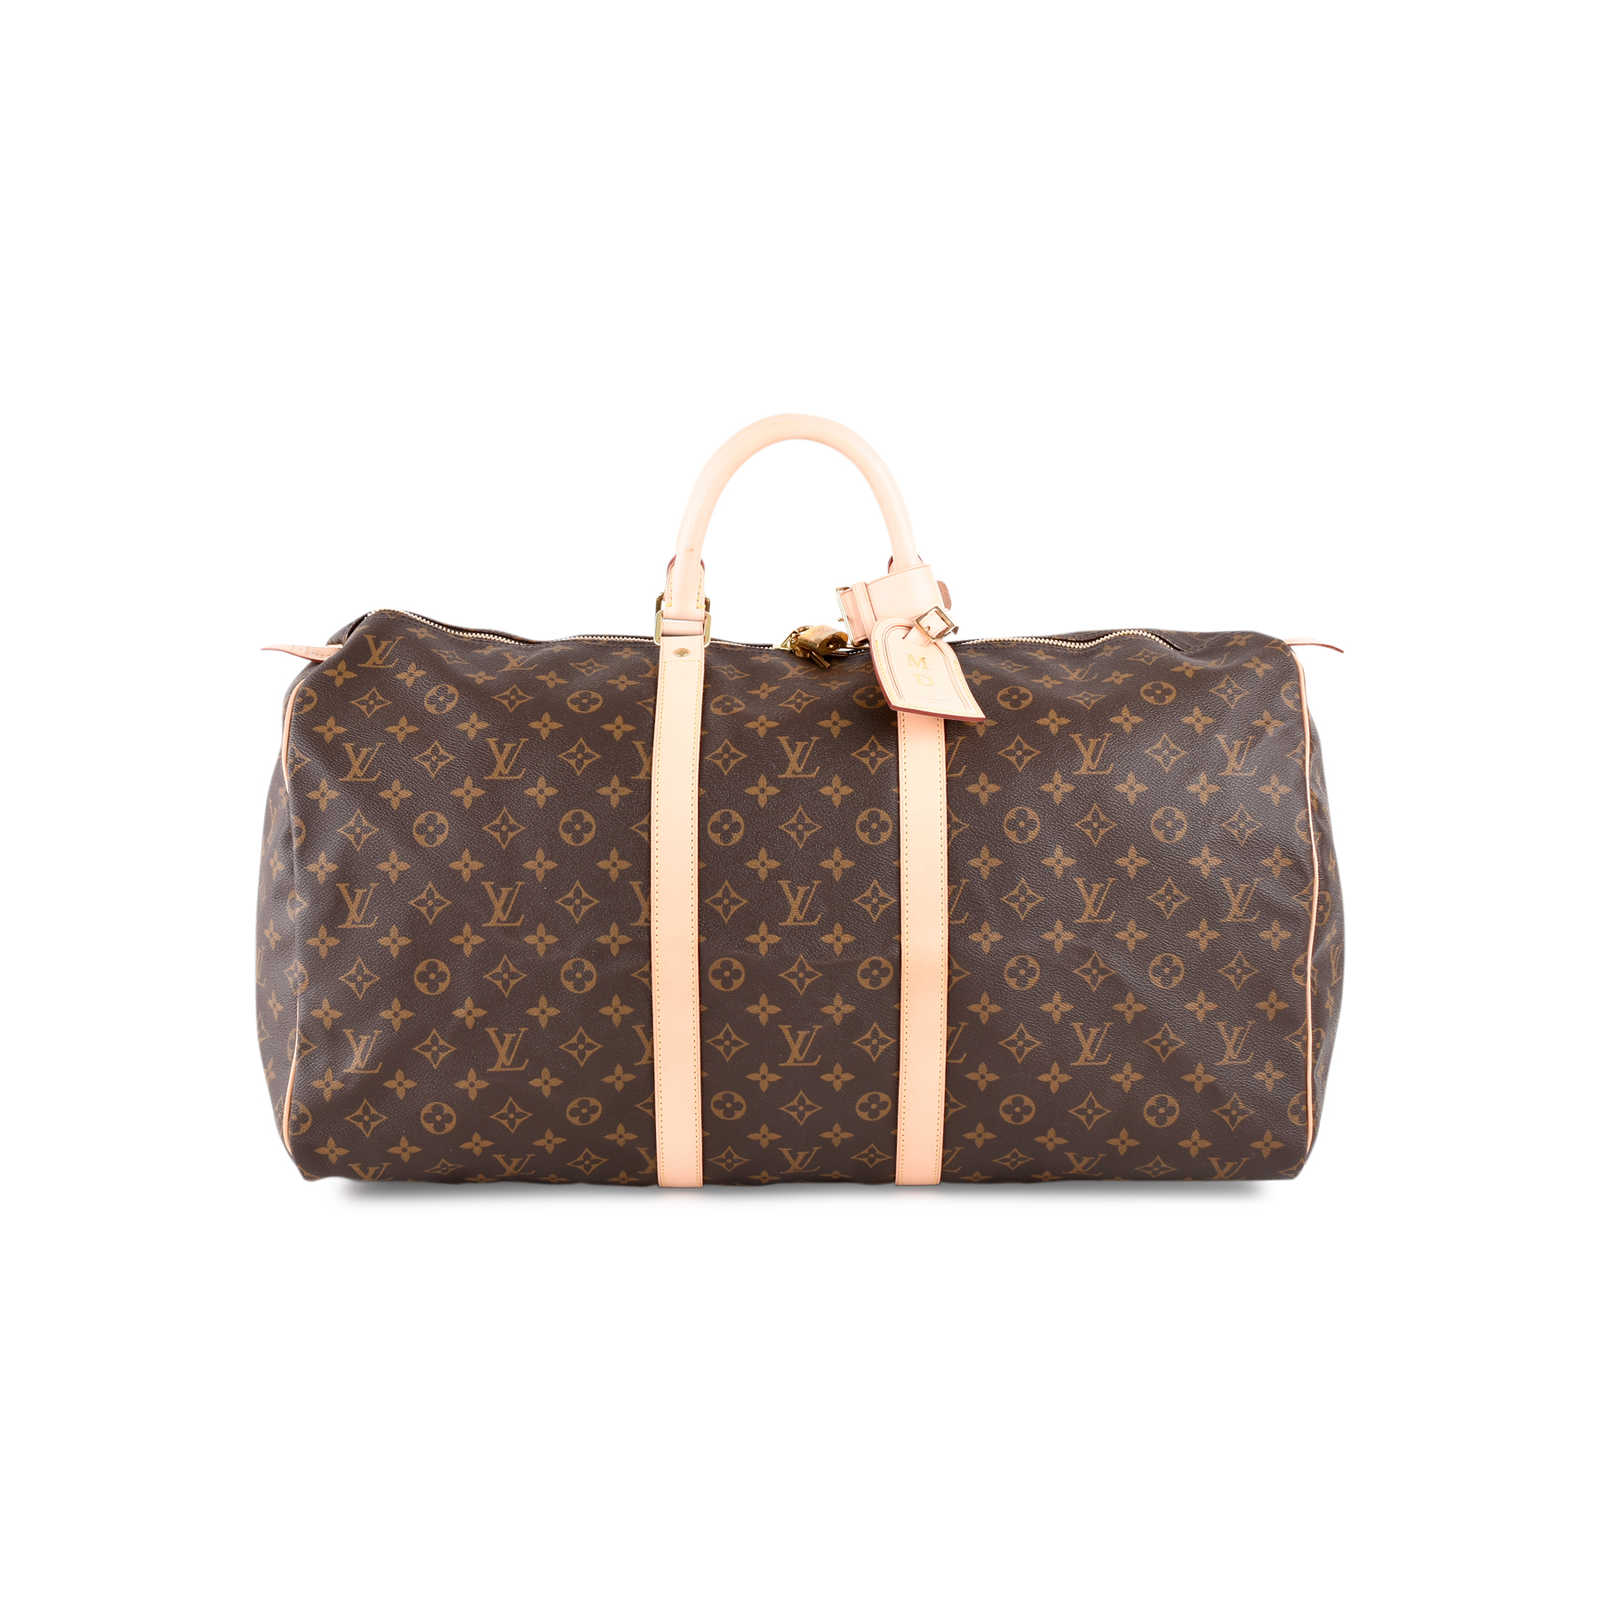 2db5d4b06743 Tap to expand · Authentic Second Hand Louis Vuitton Monogram Keepall 55  (PSS-462-00024) ...